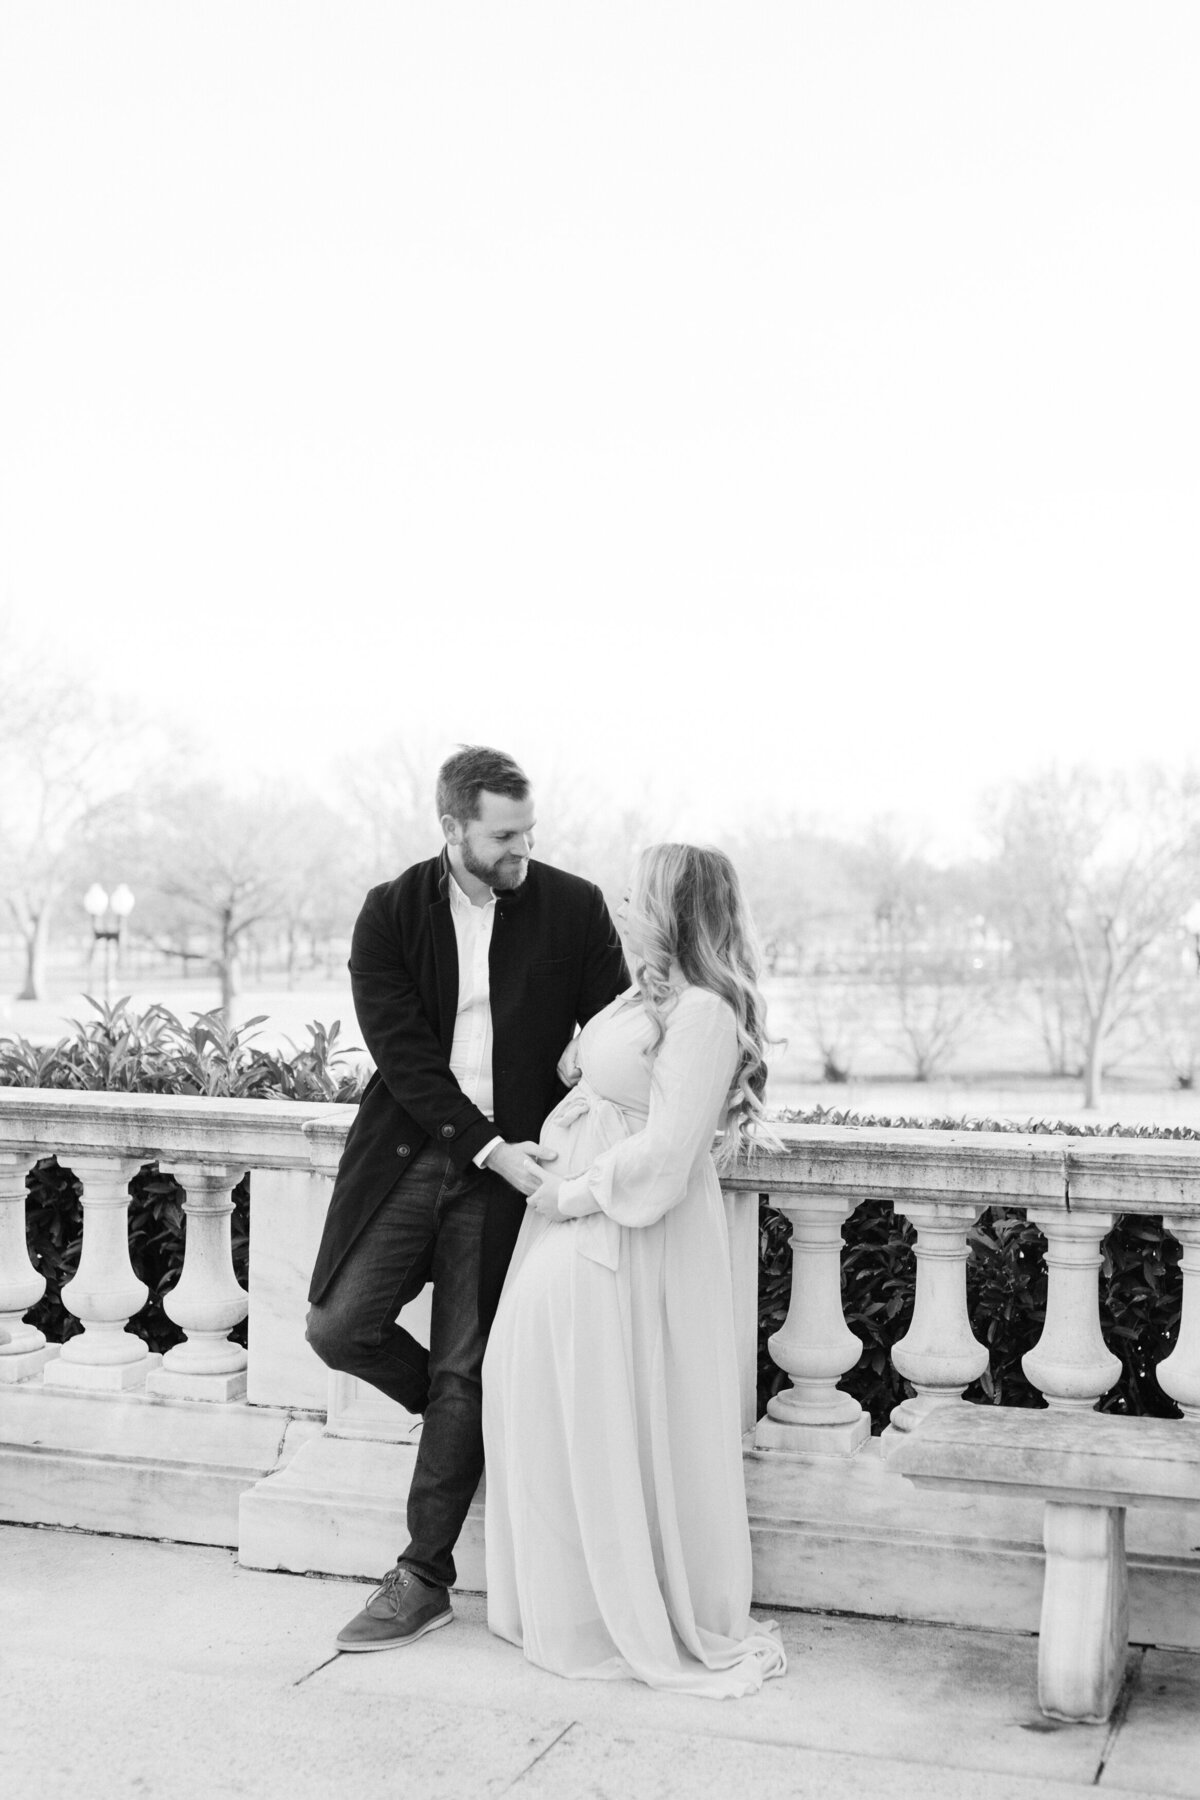 LB Photography | Maternity | Lauren + Marshal | Washington, DC-4